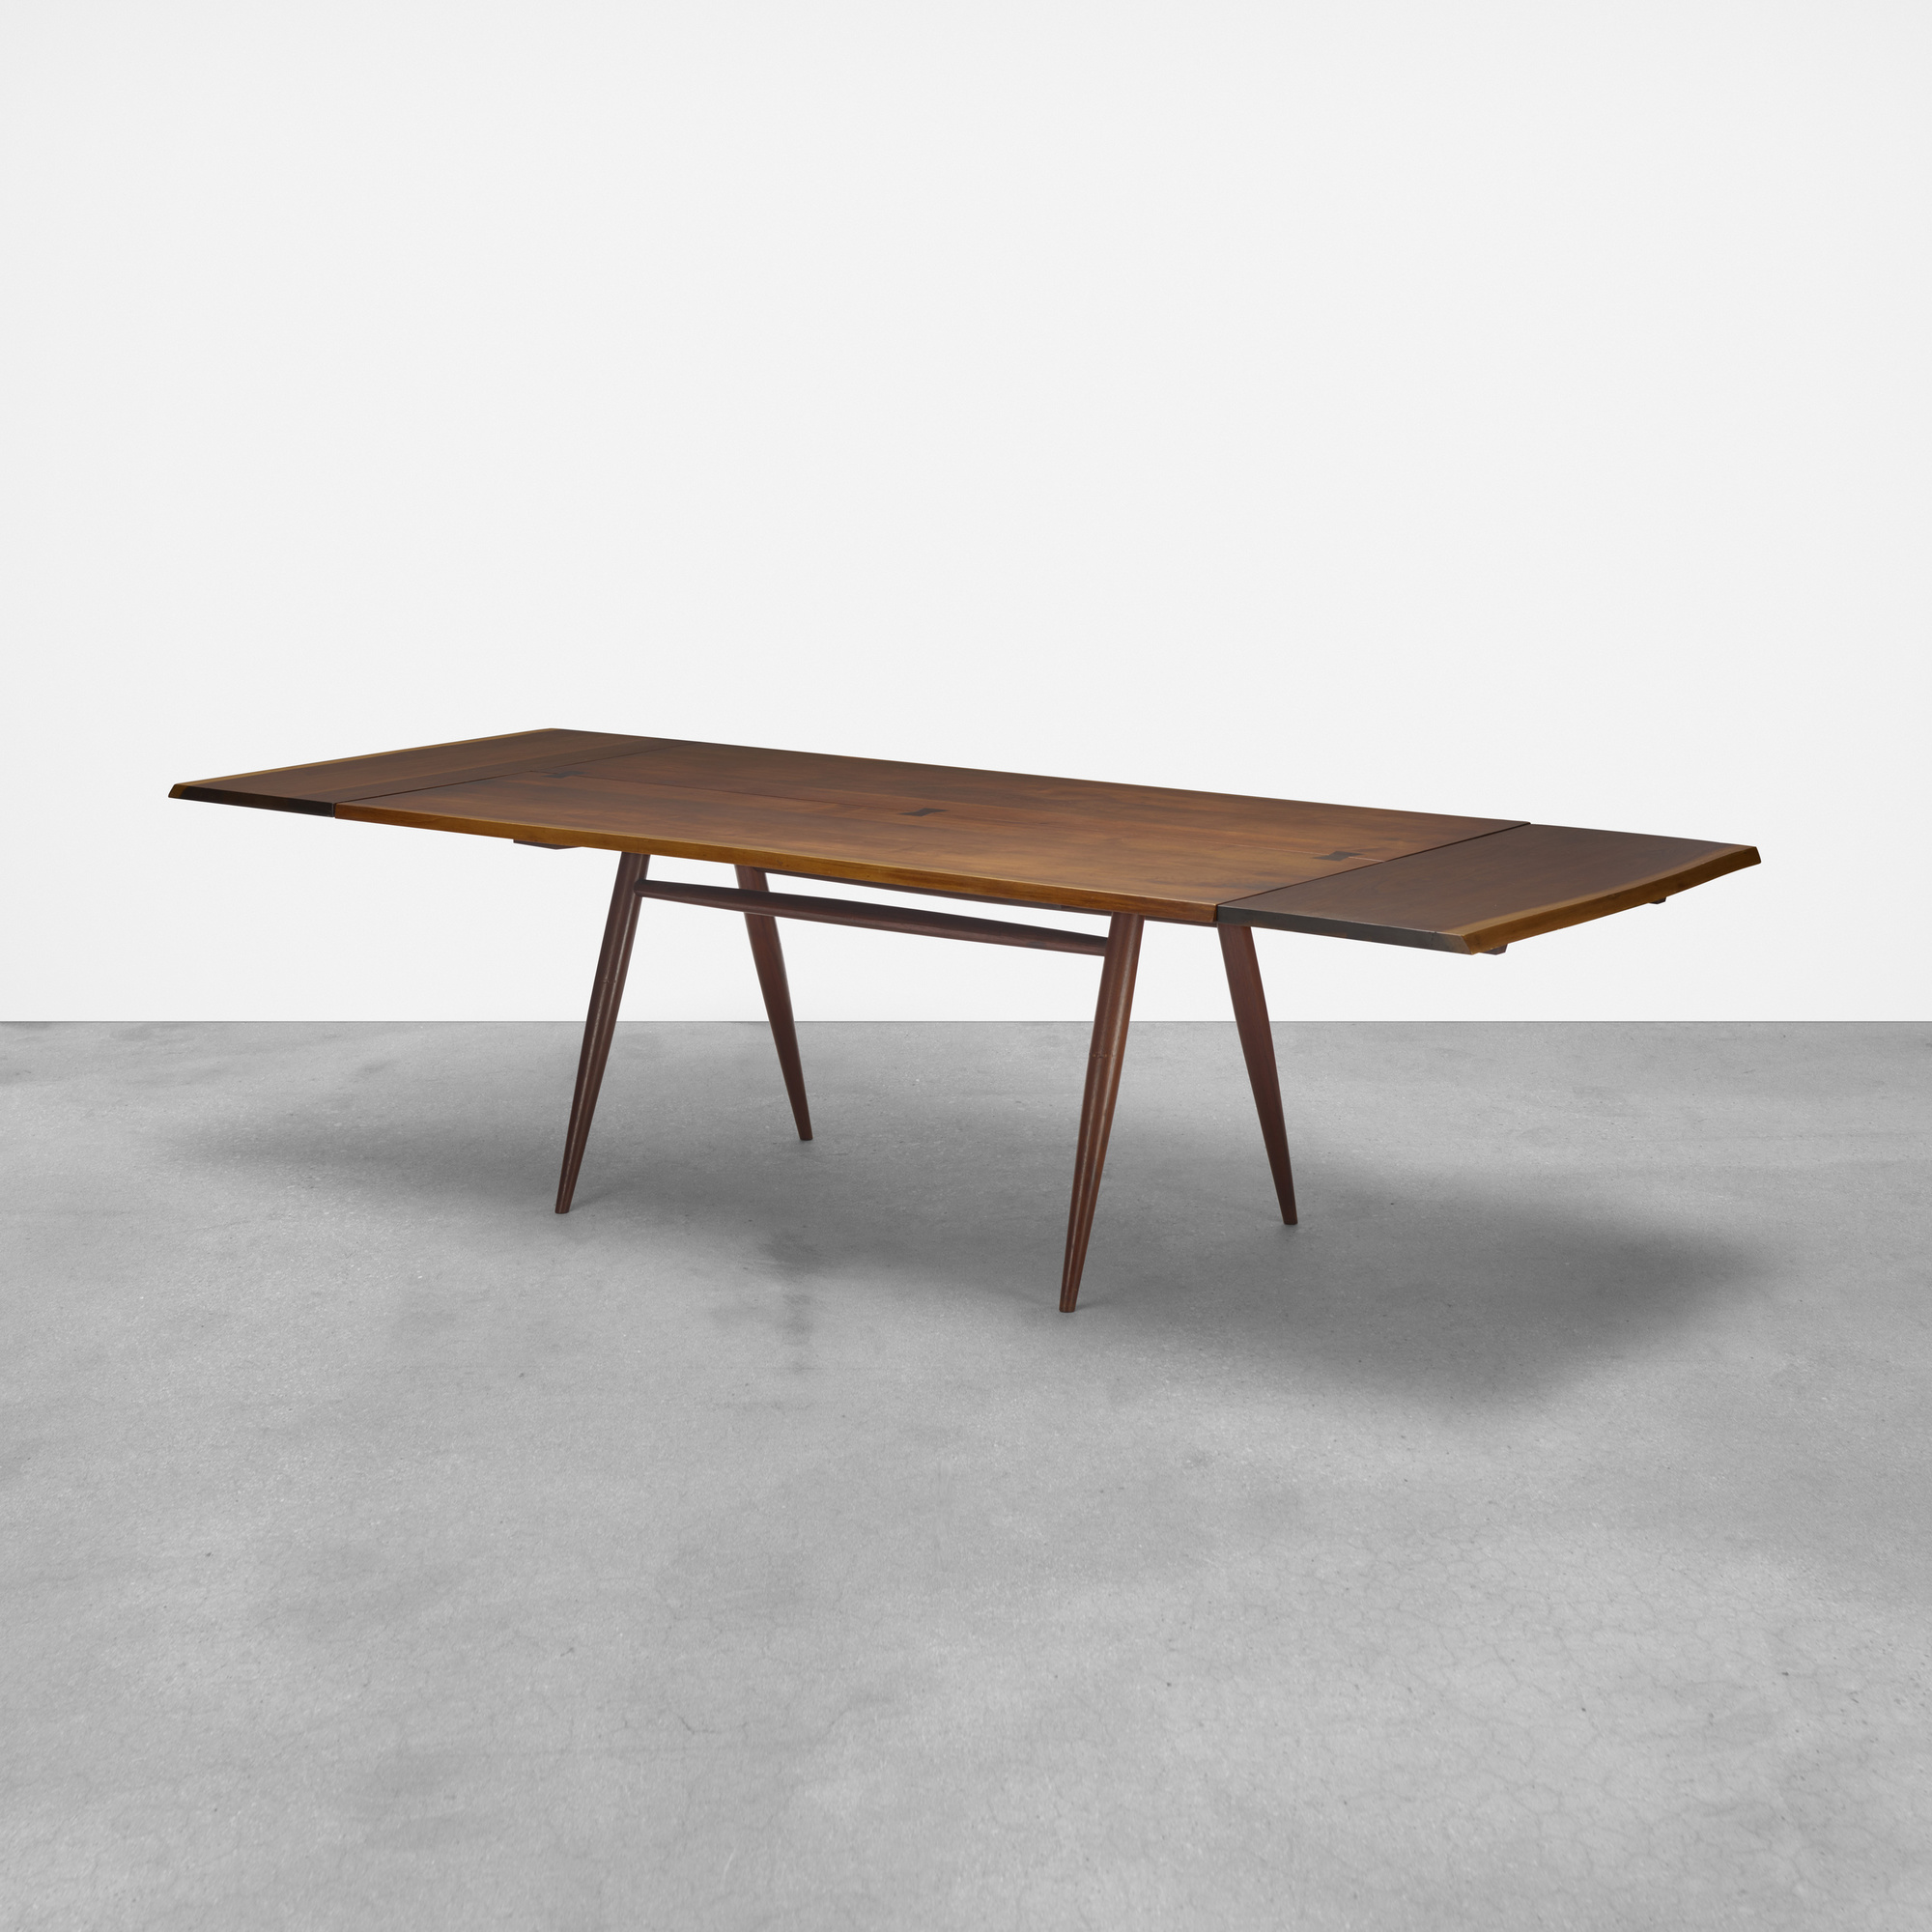 133: George Nakashima / Turned leg dining table (1 of 3)